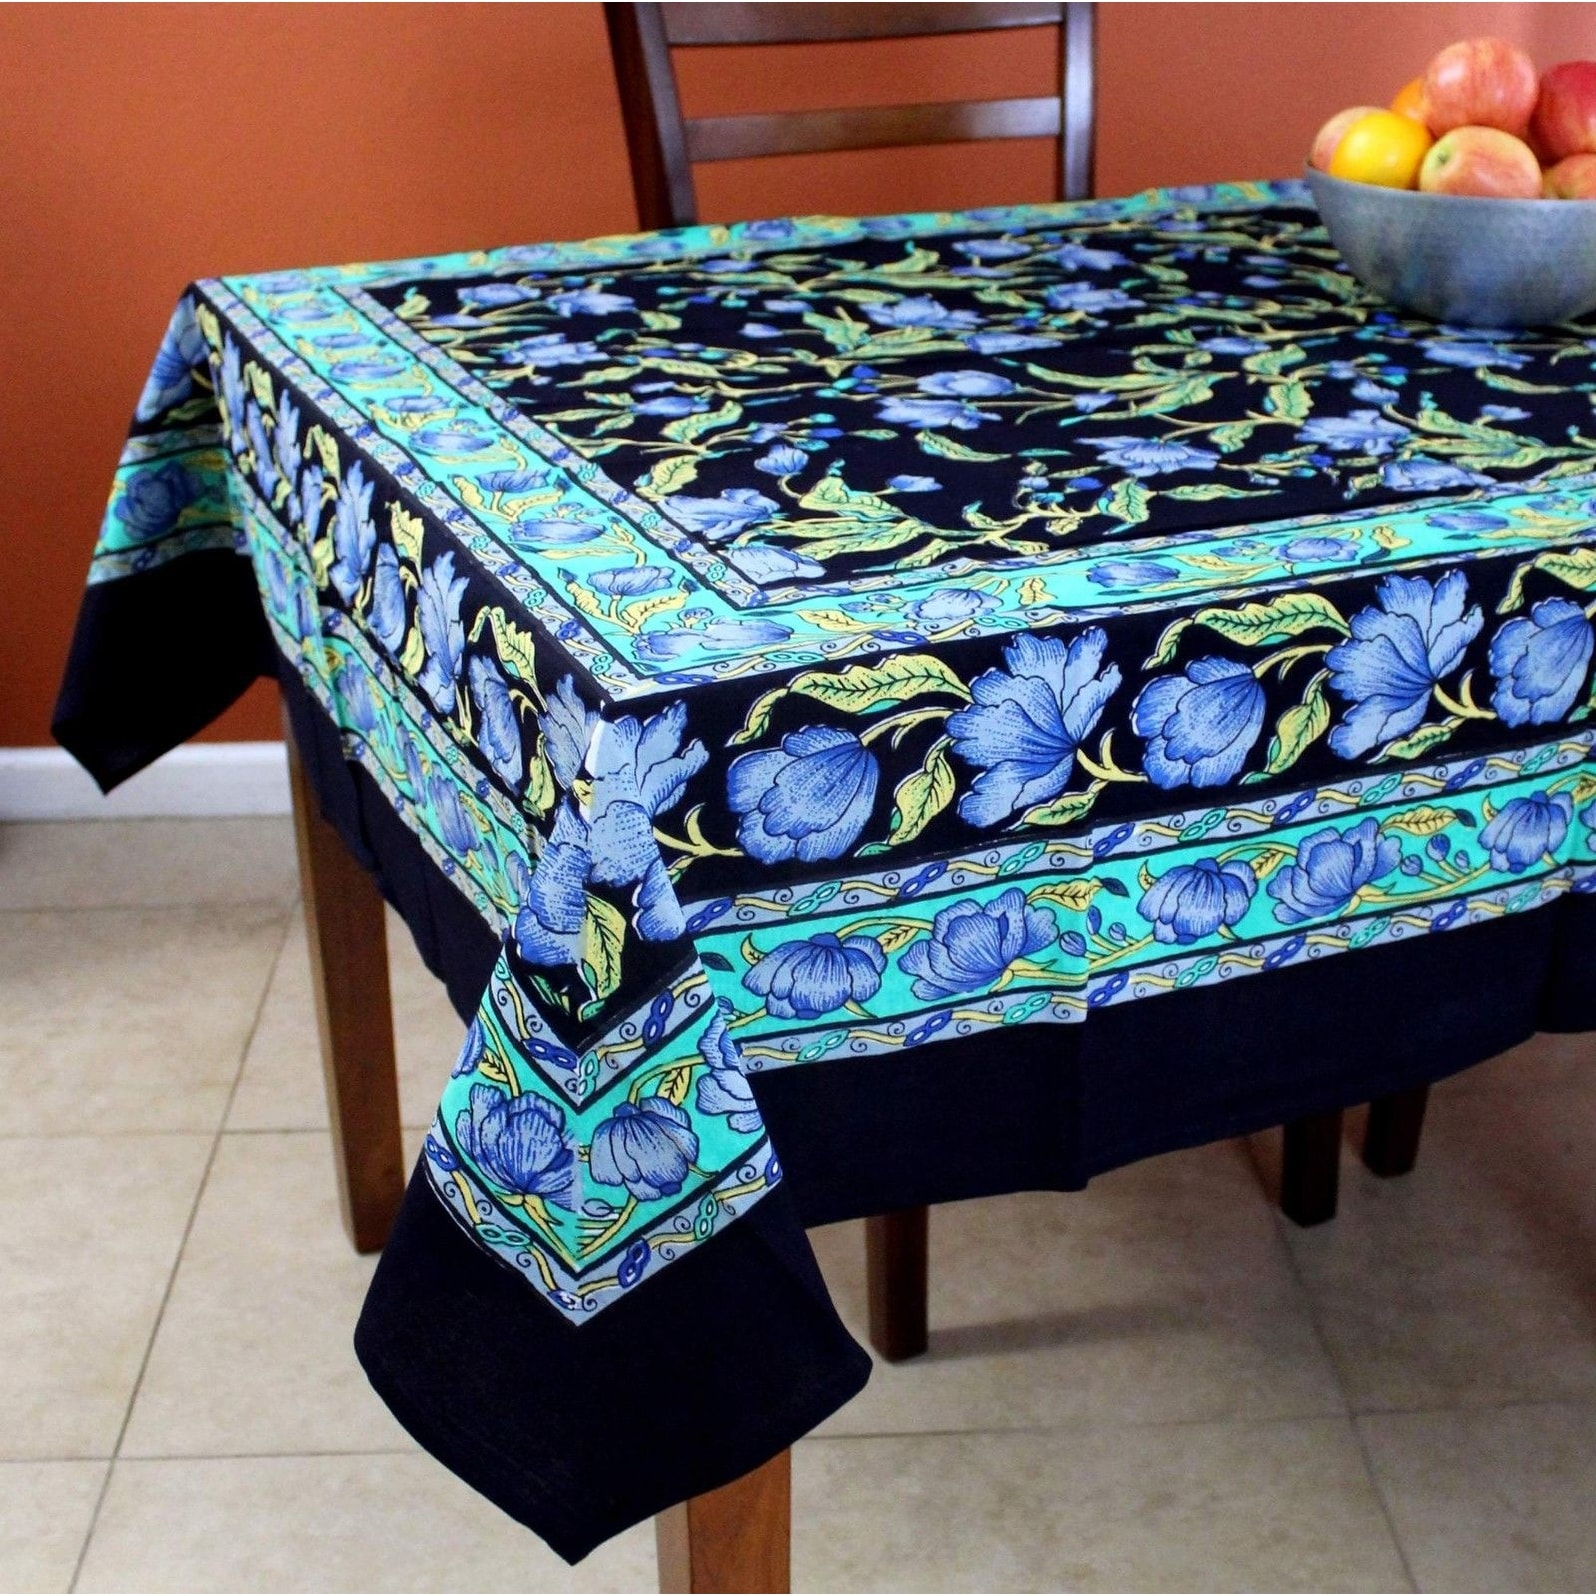 ... Thumbnail French Floral Print Cotton Tablecloth For Square Tables 60 X  60 Inches Black Blue Green ...